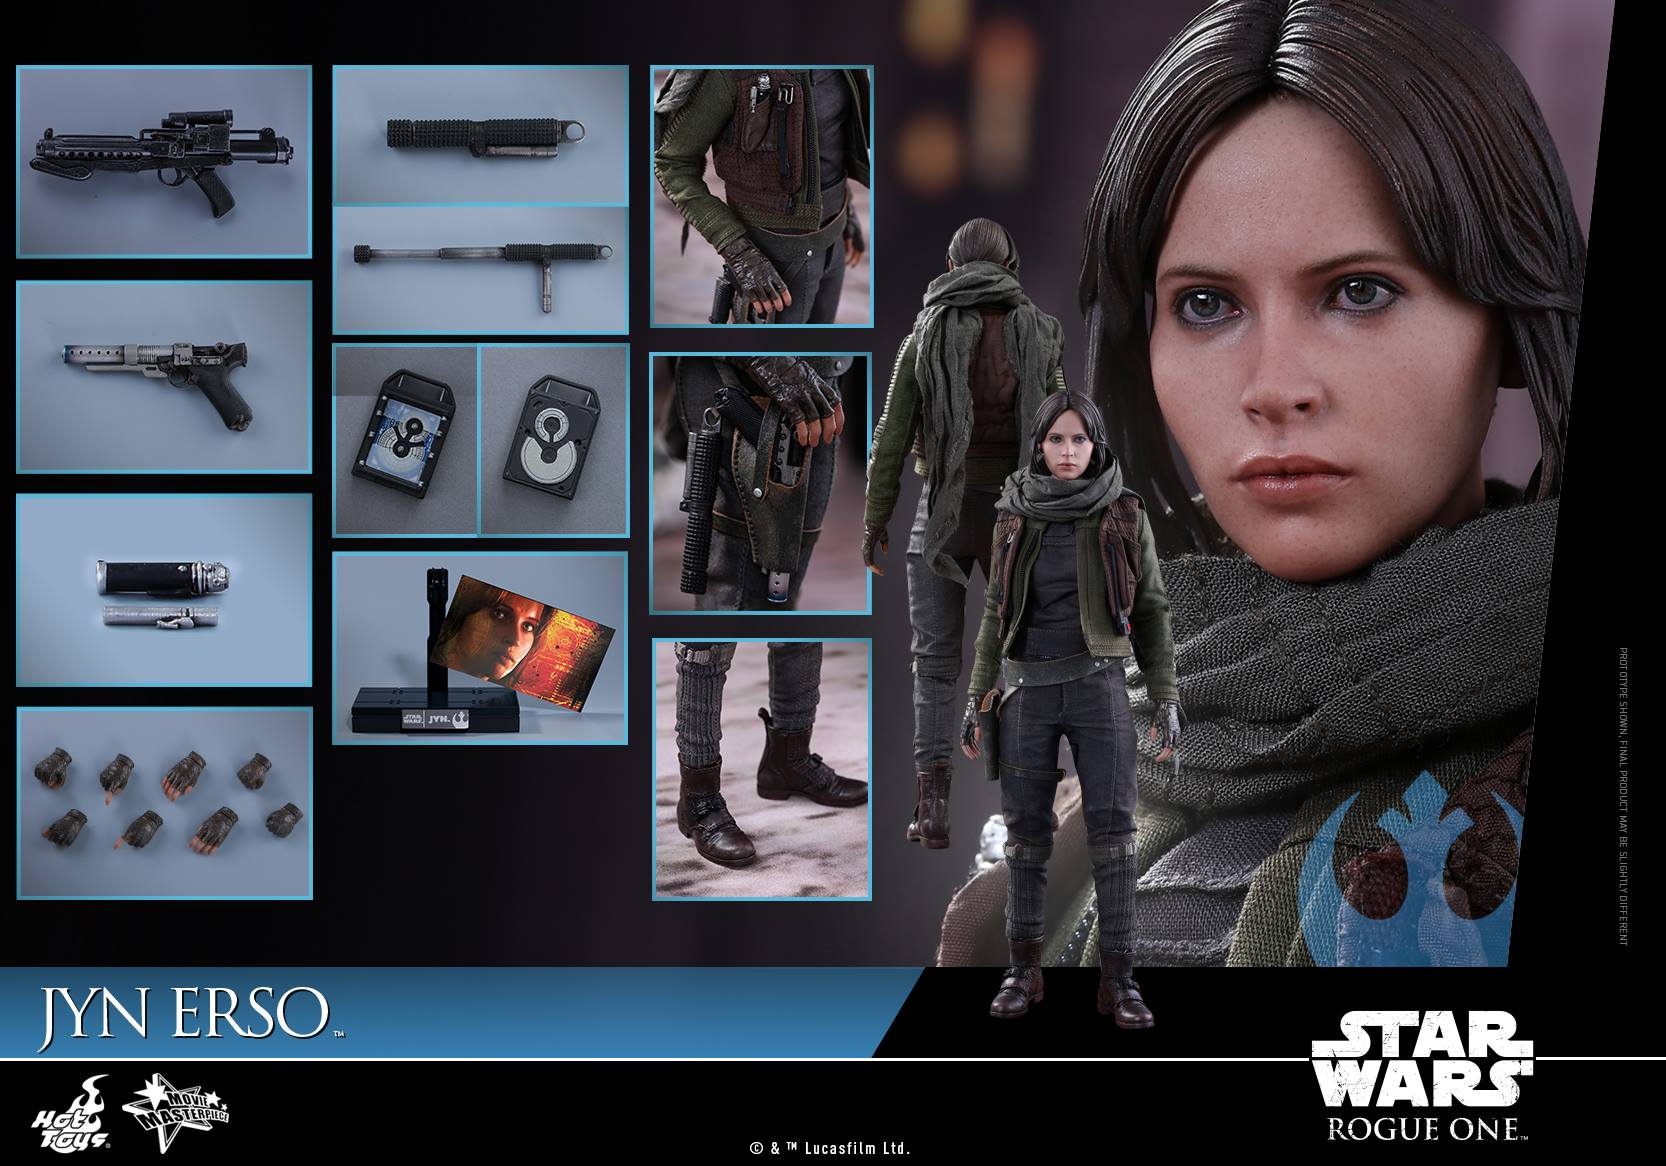 Rogue One Jyn Erso Hot Toy